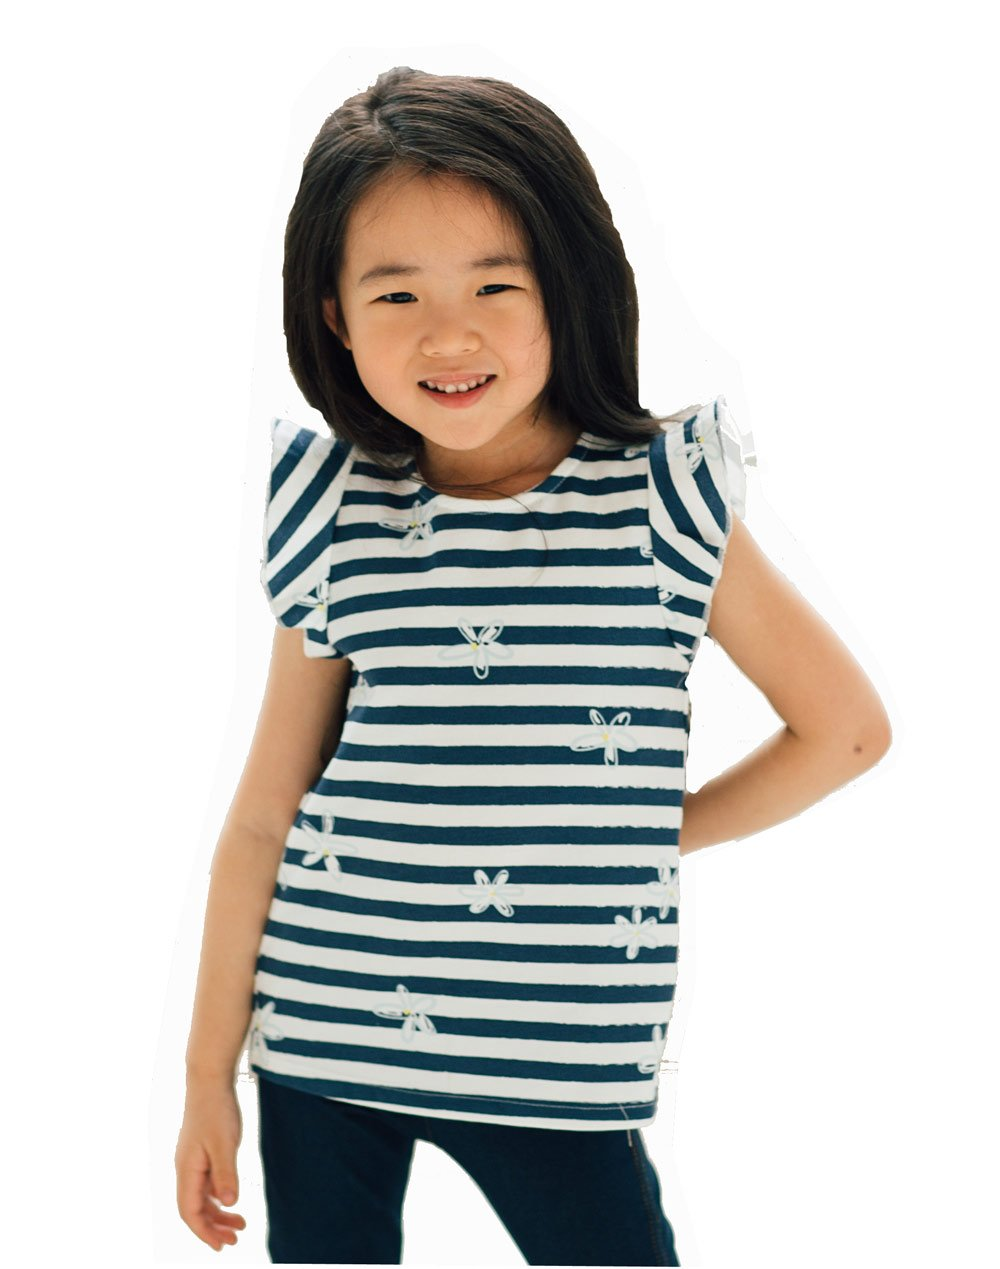 Flower Frills Girls Navy and White Top - 6 month to 4 years - Stylemykid.com